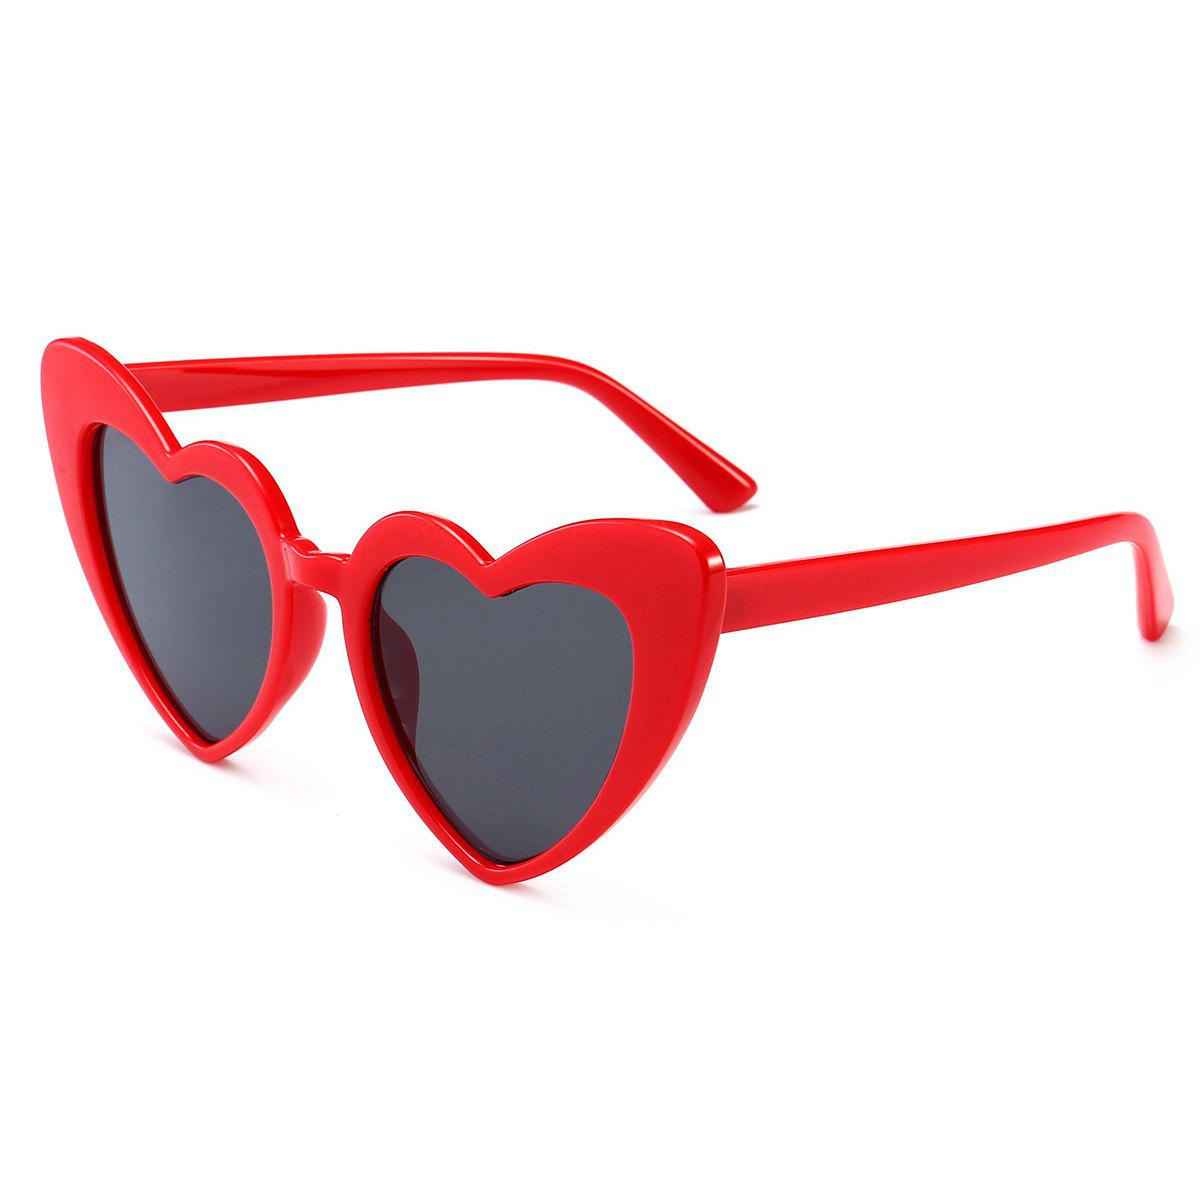 Discount Full Frame Heart Shape Sunglasses